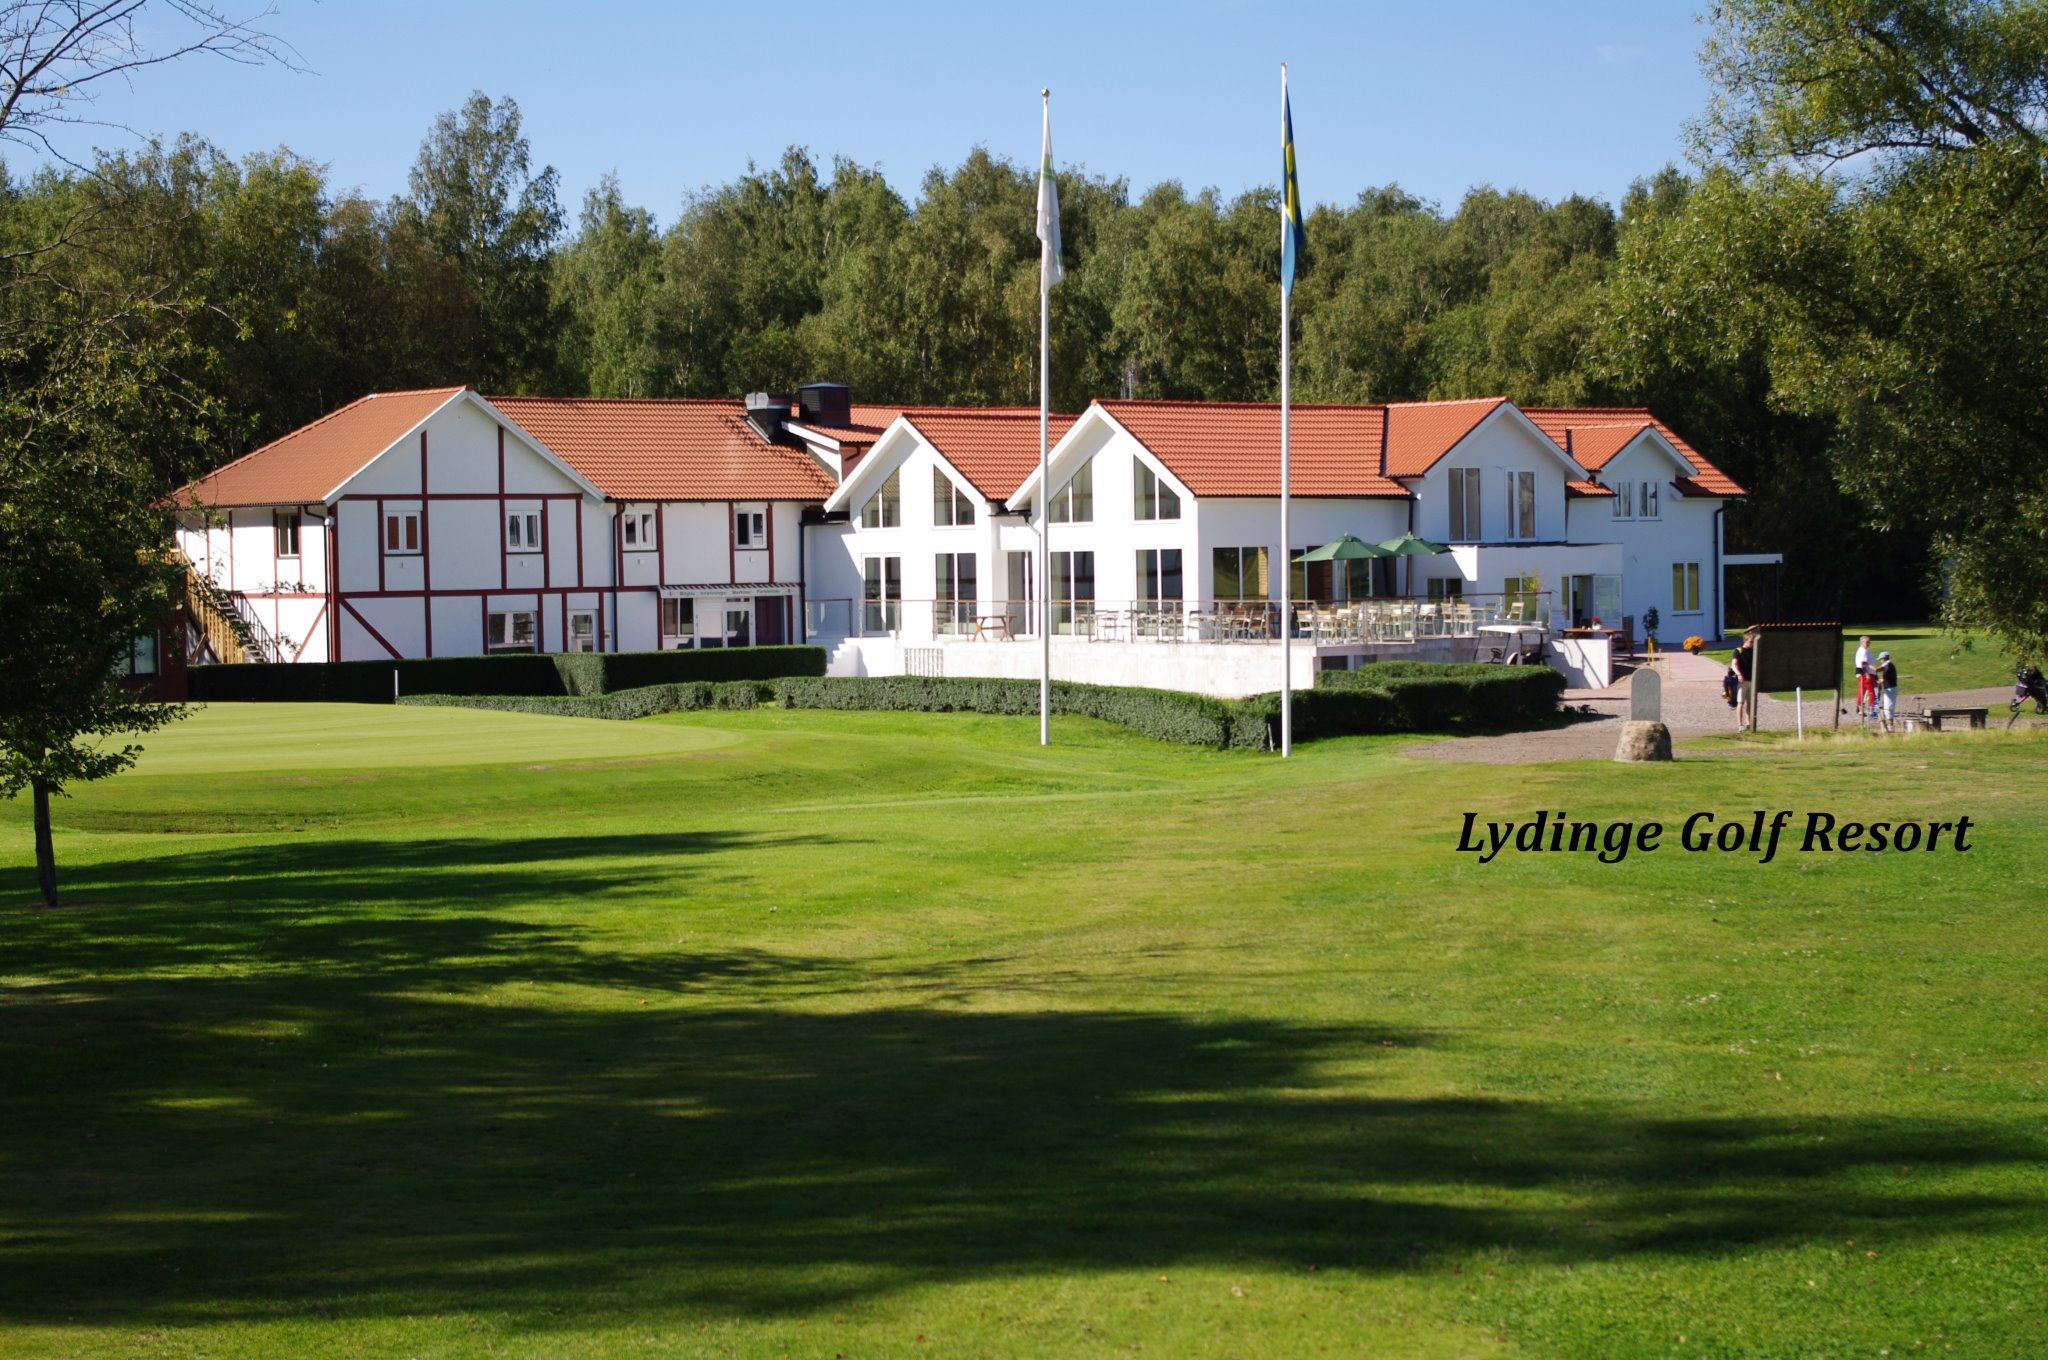 Lydinge Golf Resort